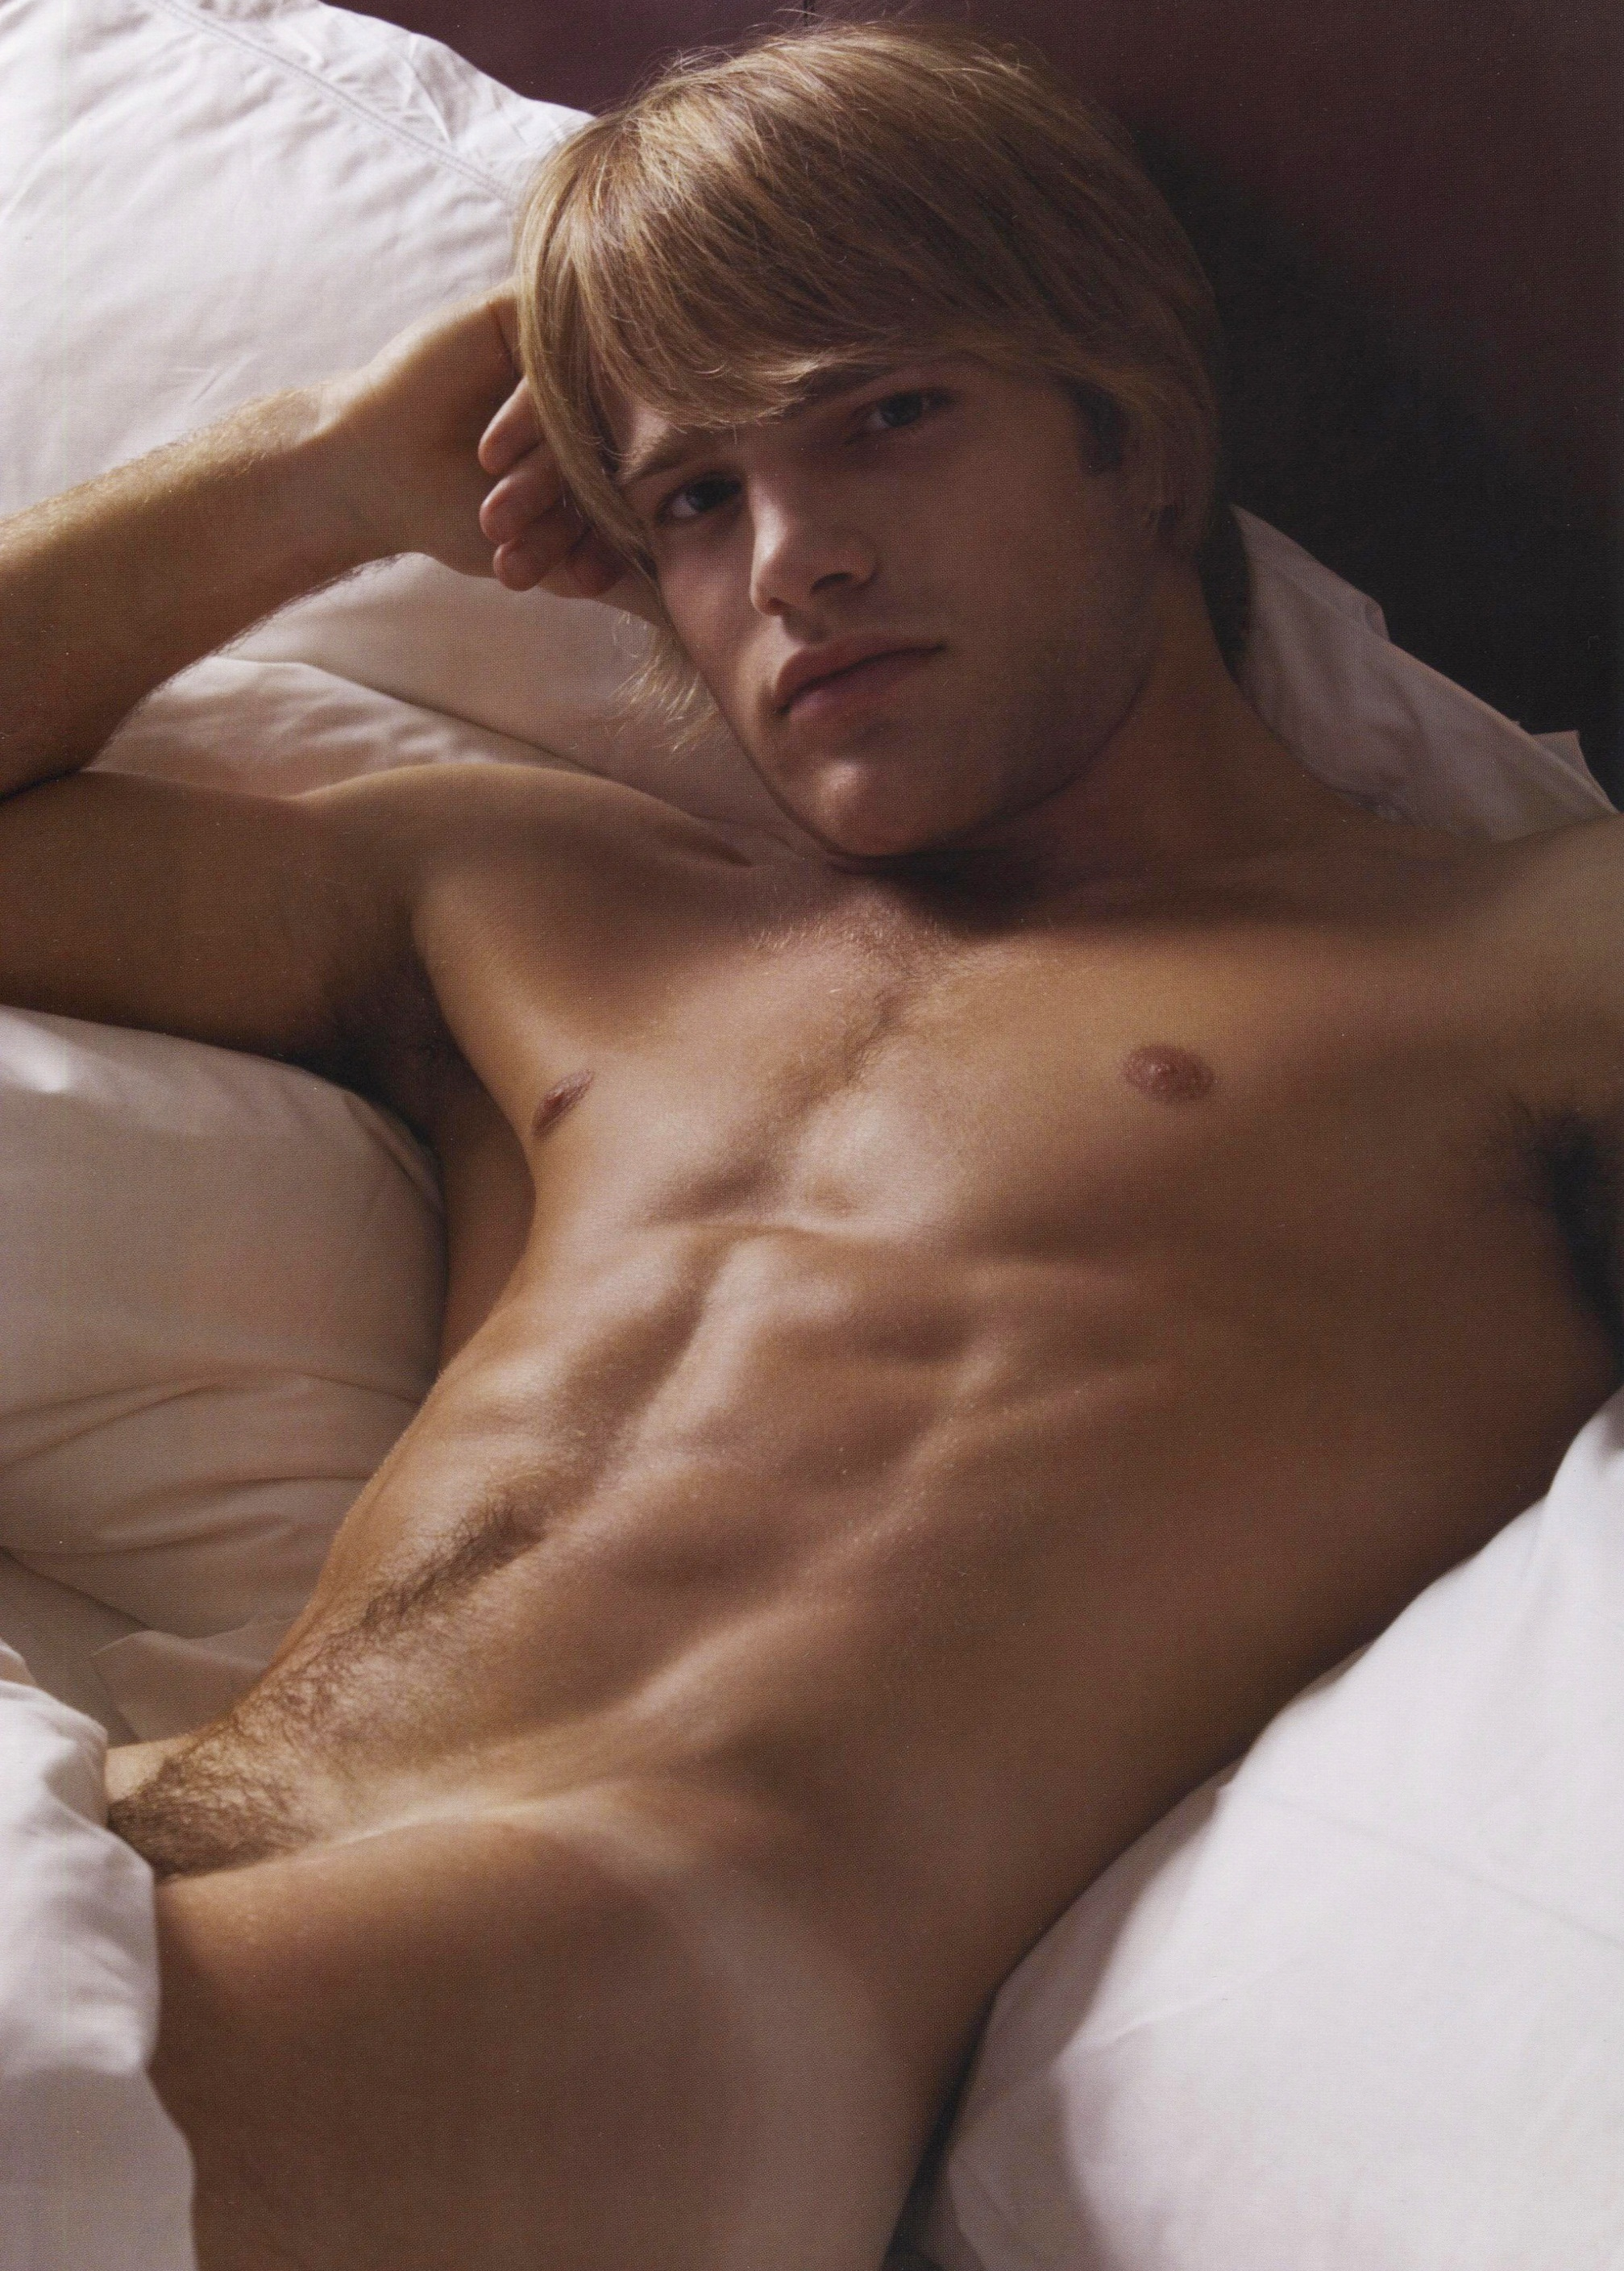 All personal Blonde male models naked sounds tempting